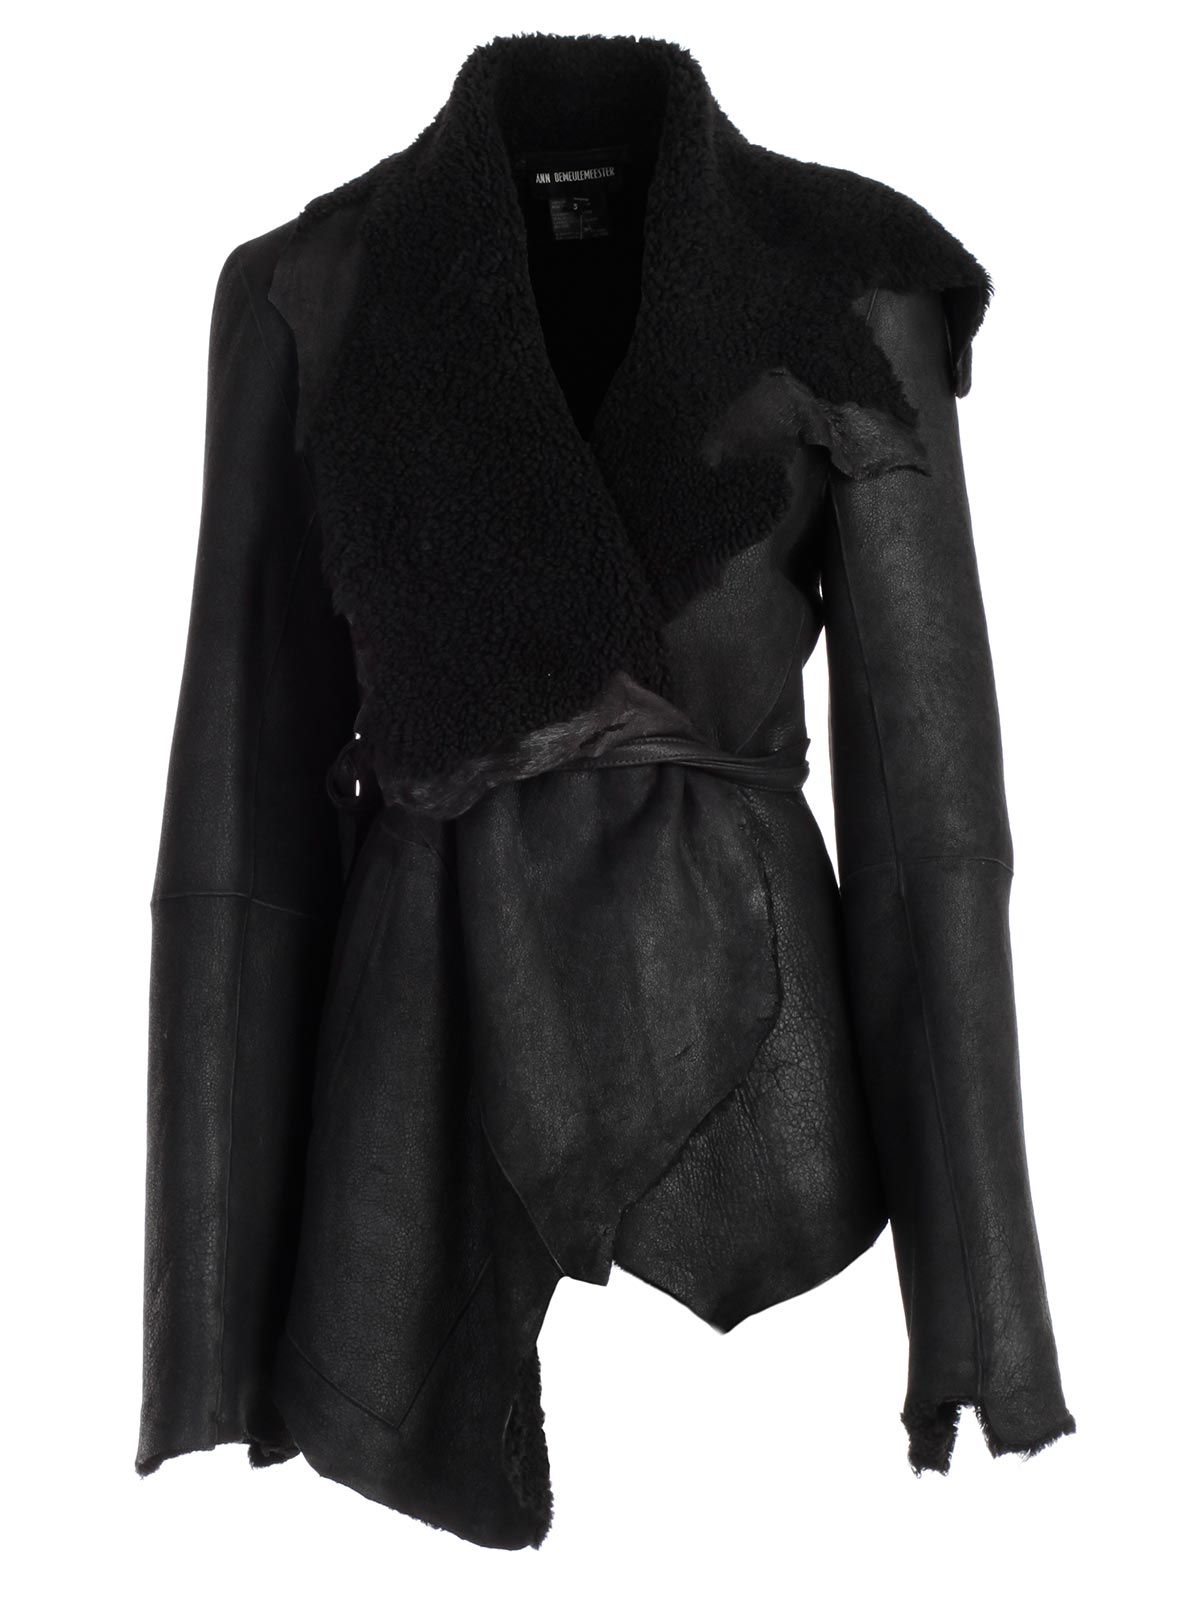 Picture of Ann Demeulemester Waistcoat & Gilet